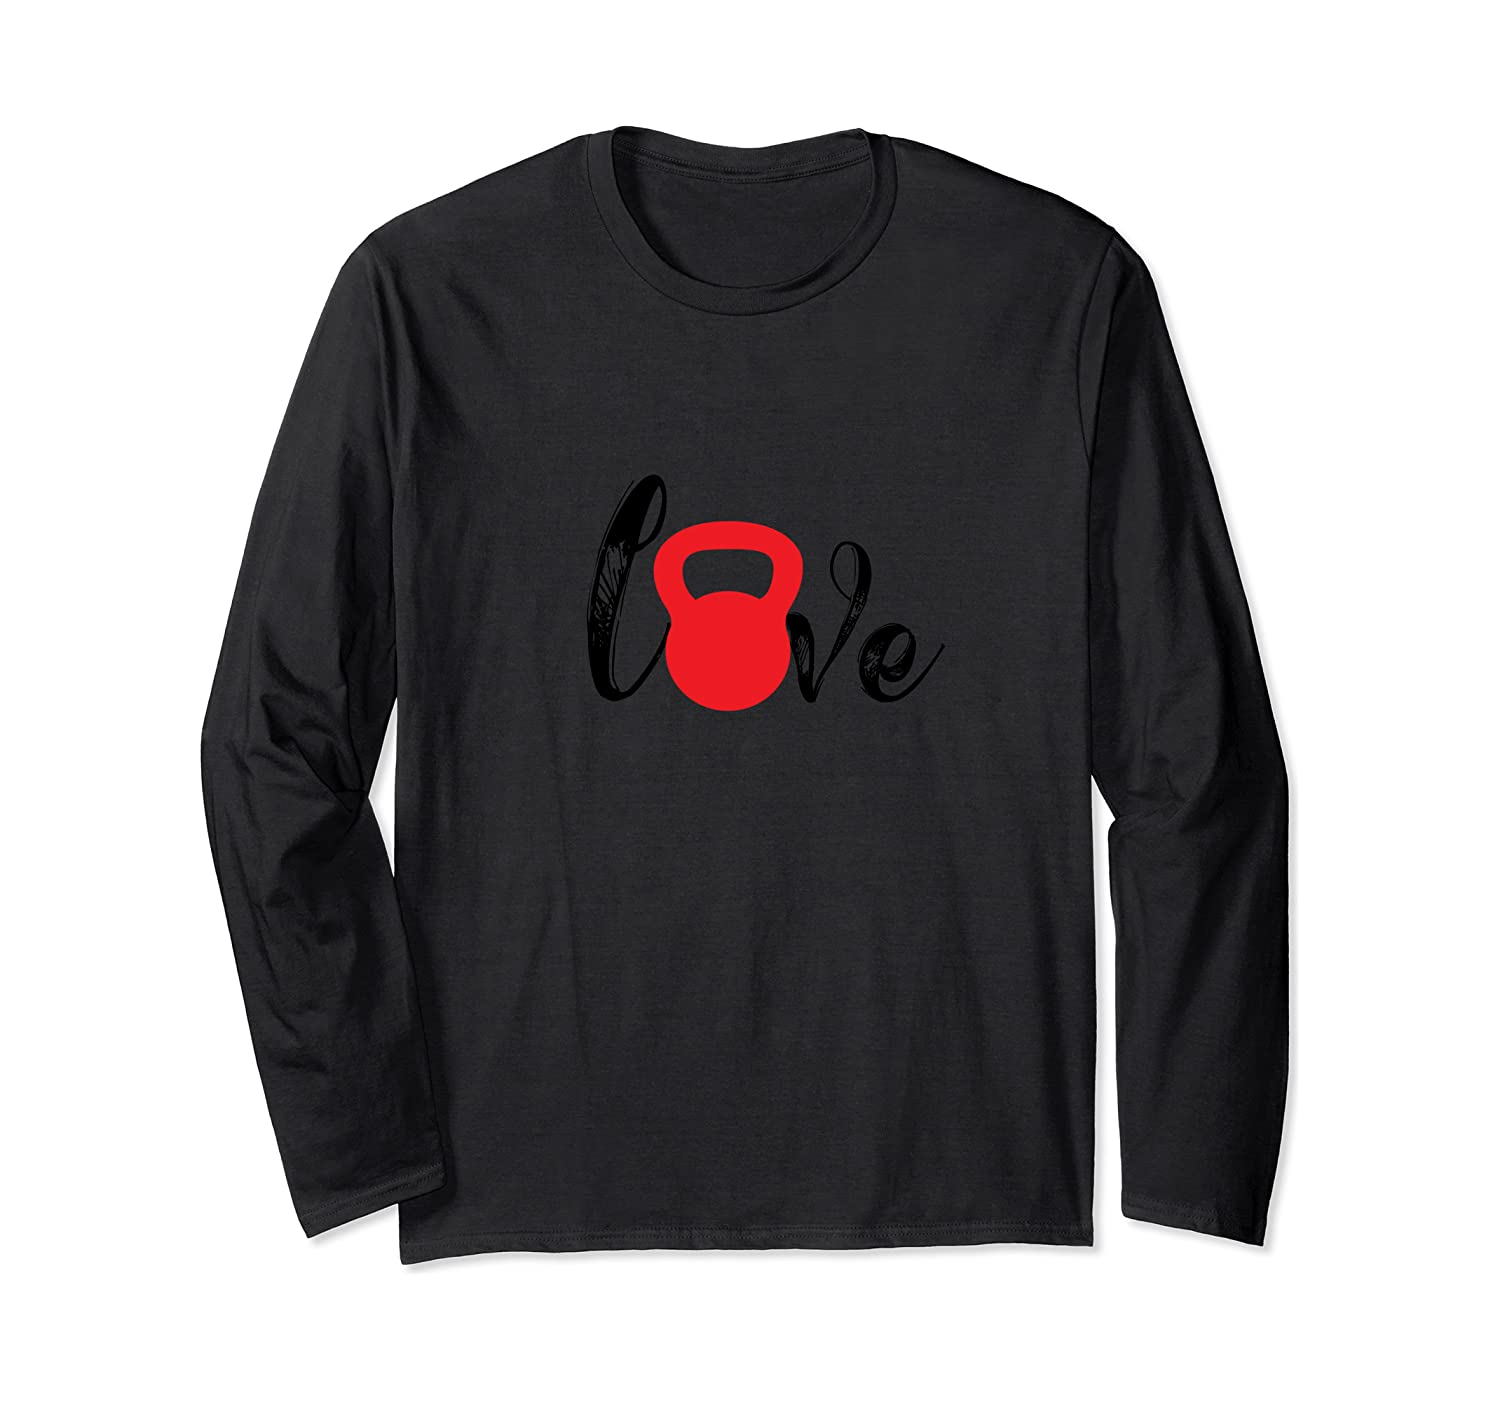 I Love Kettlebell Vintage Home GYM Fitness Exercise Workout Long Sleeve T-Shirt-Awarplus